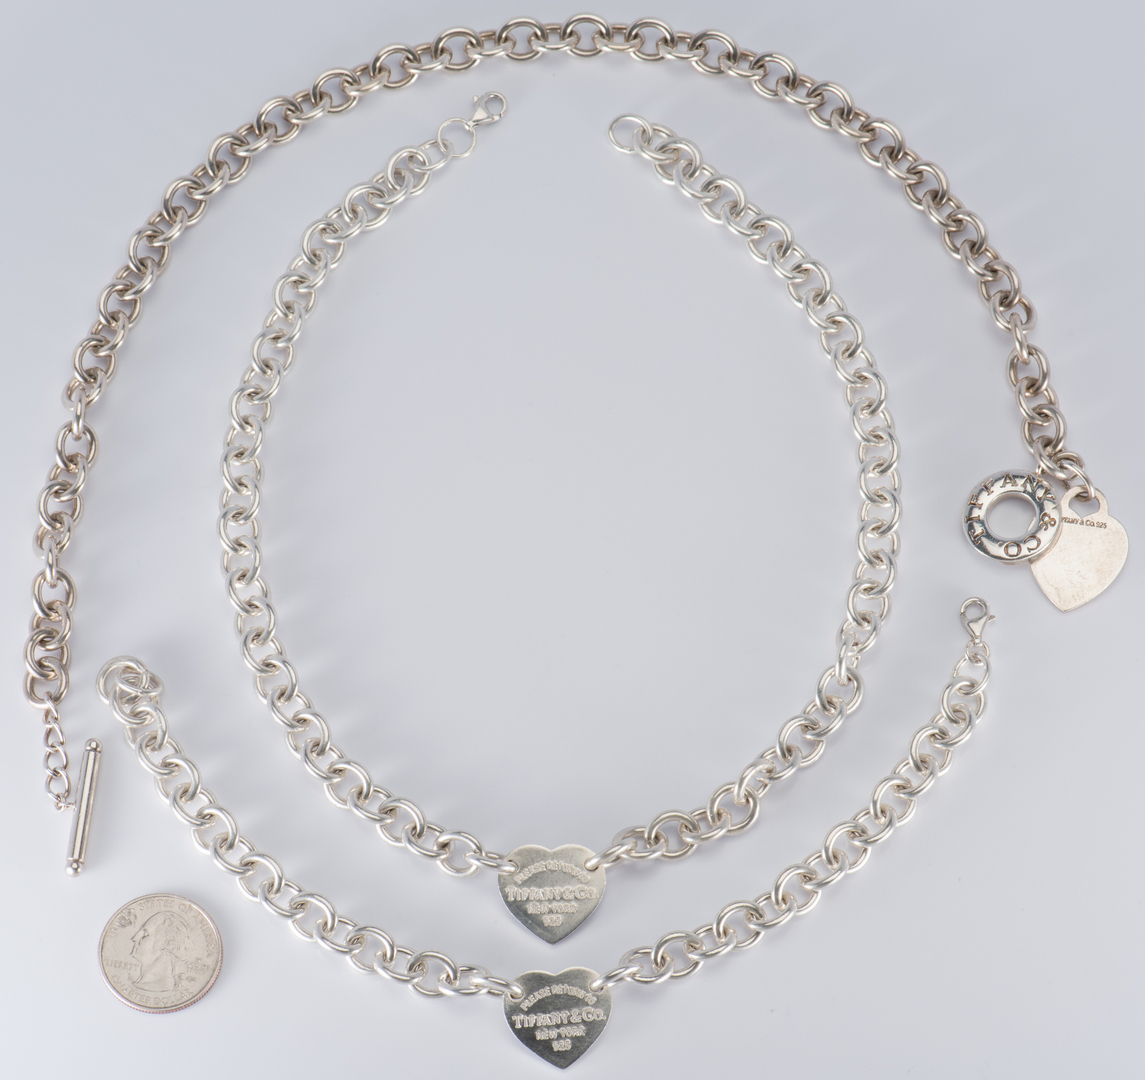 Lot 883 Group Tiffany Sterling Designer Jewelry